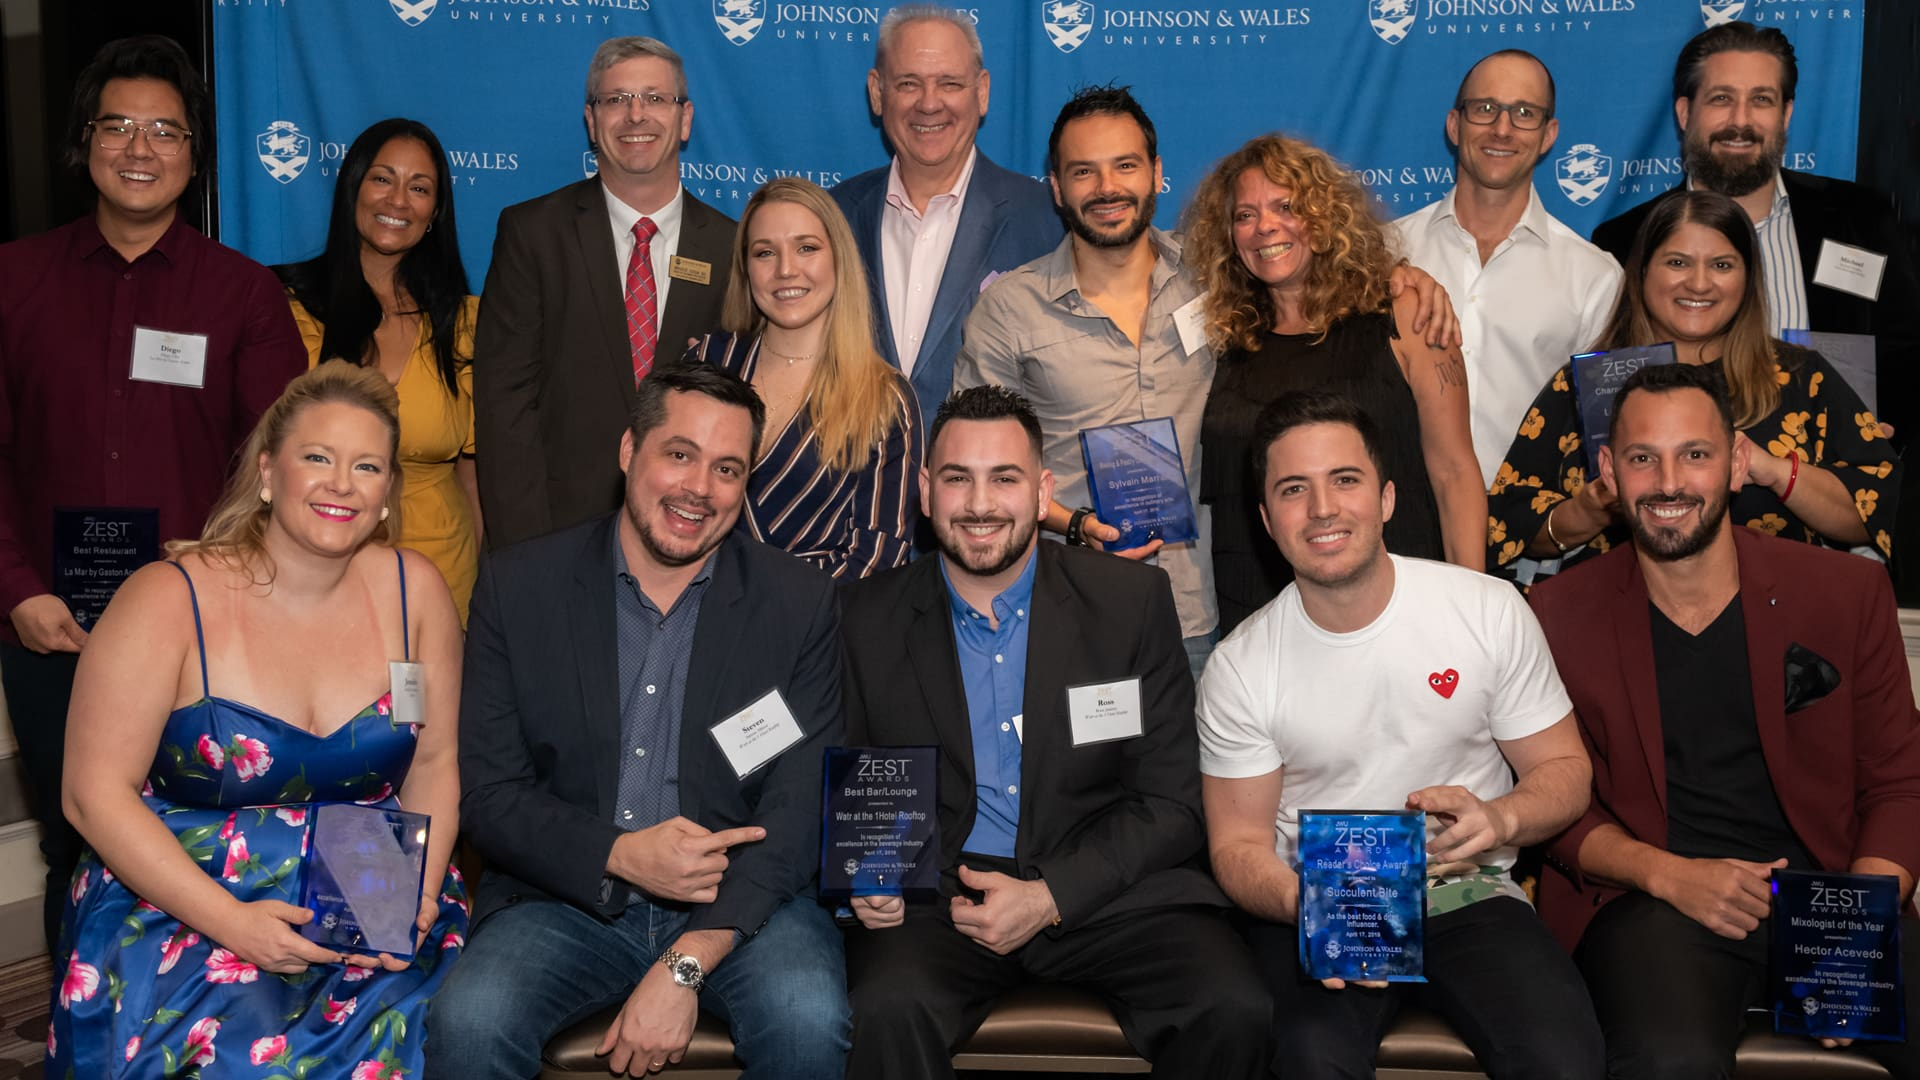 2019 JWU North Miami ZEST Award Winners